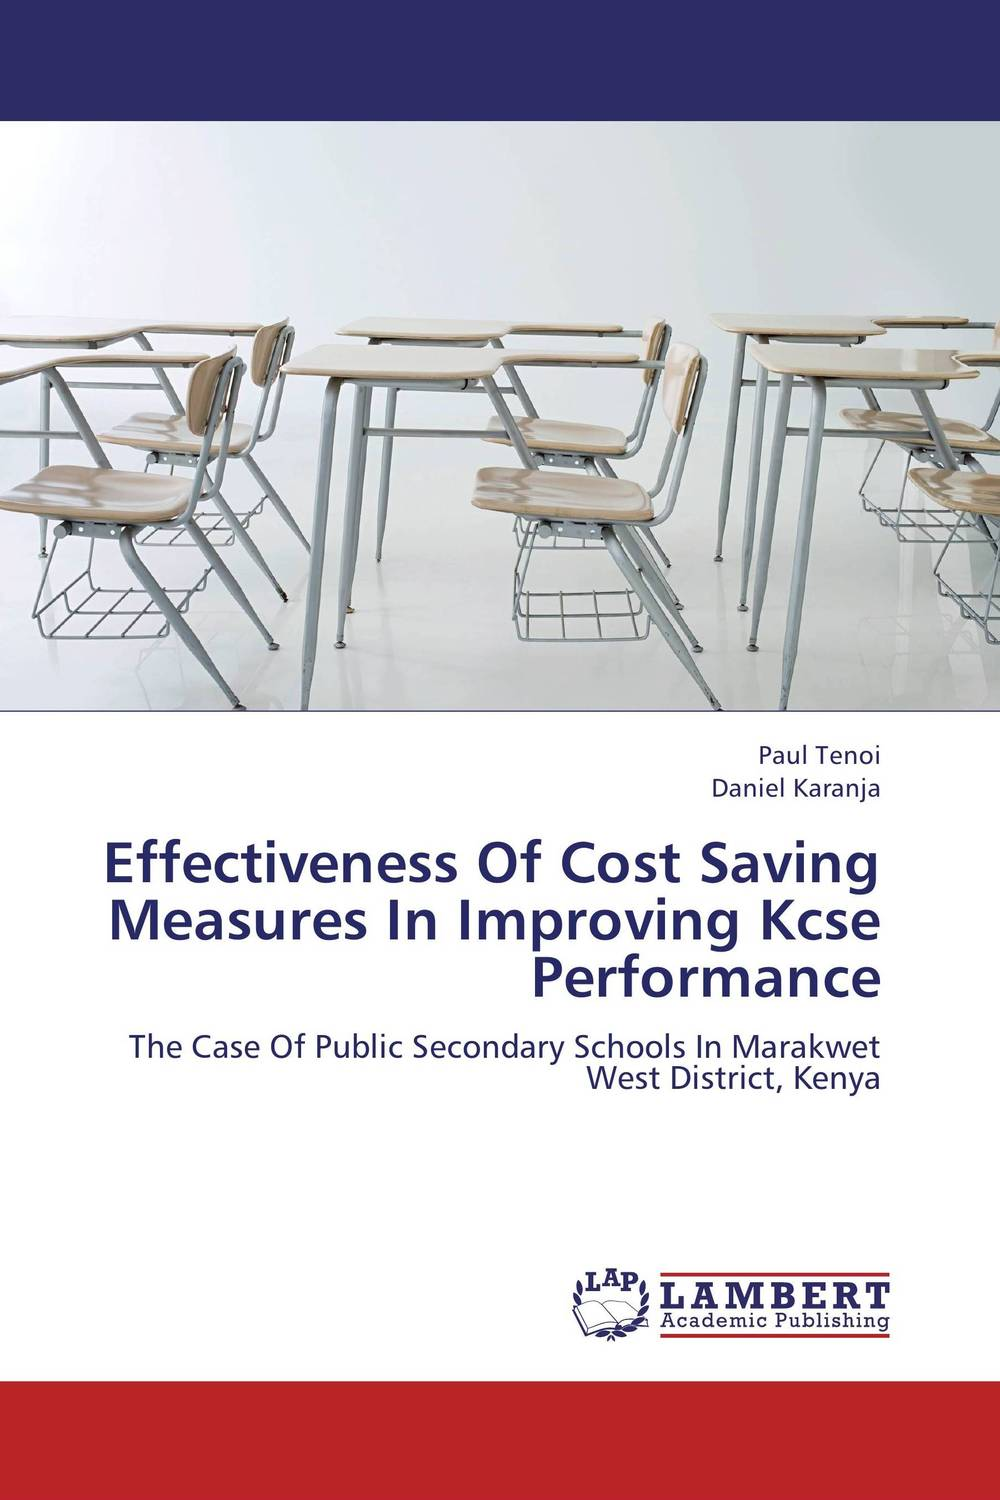 Effectiveness Of Cost Saving Measures In Improving Kcse Performance leadership and performance in public secondary schools in kenya